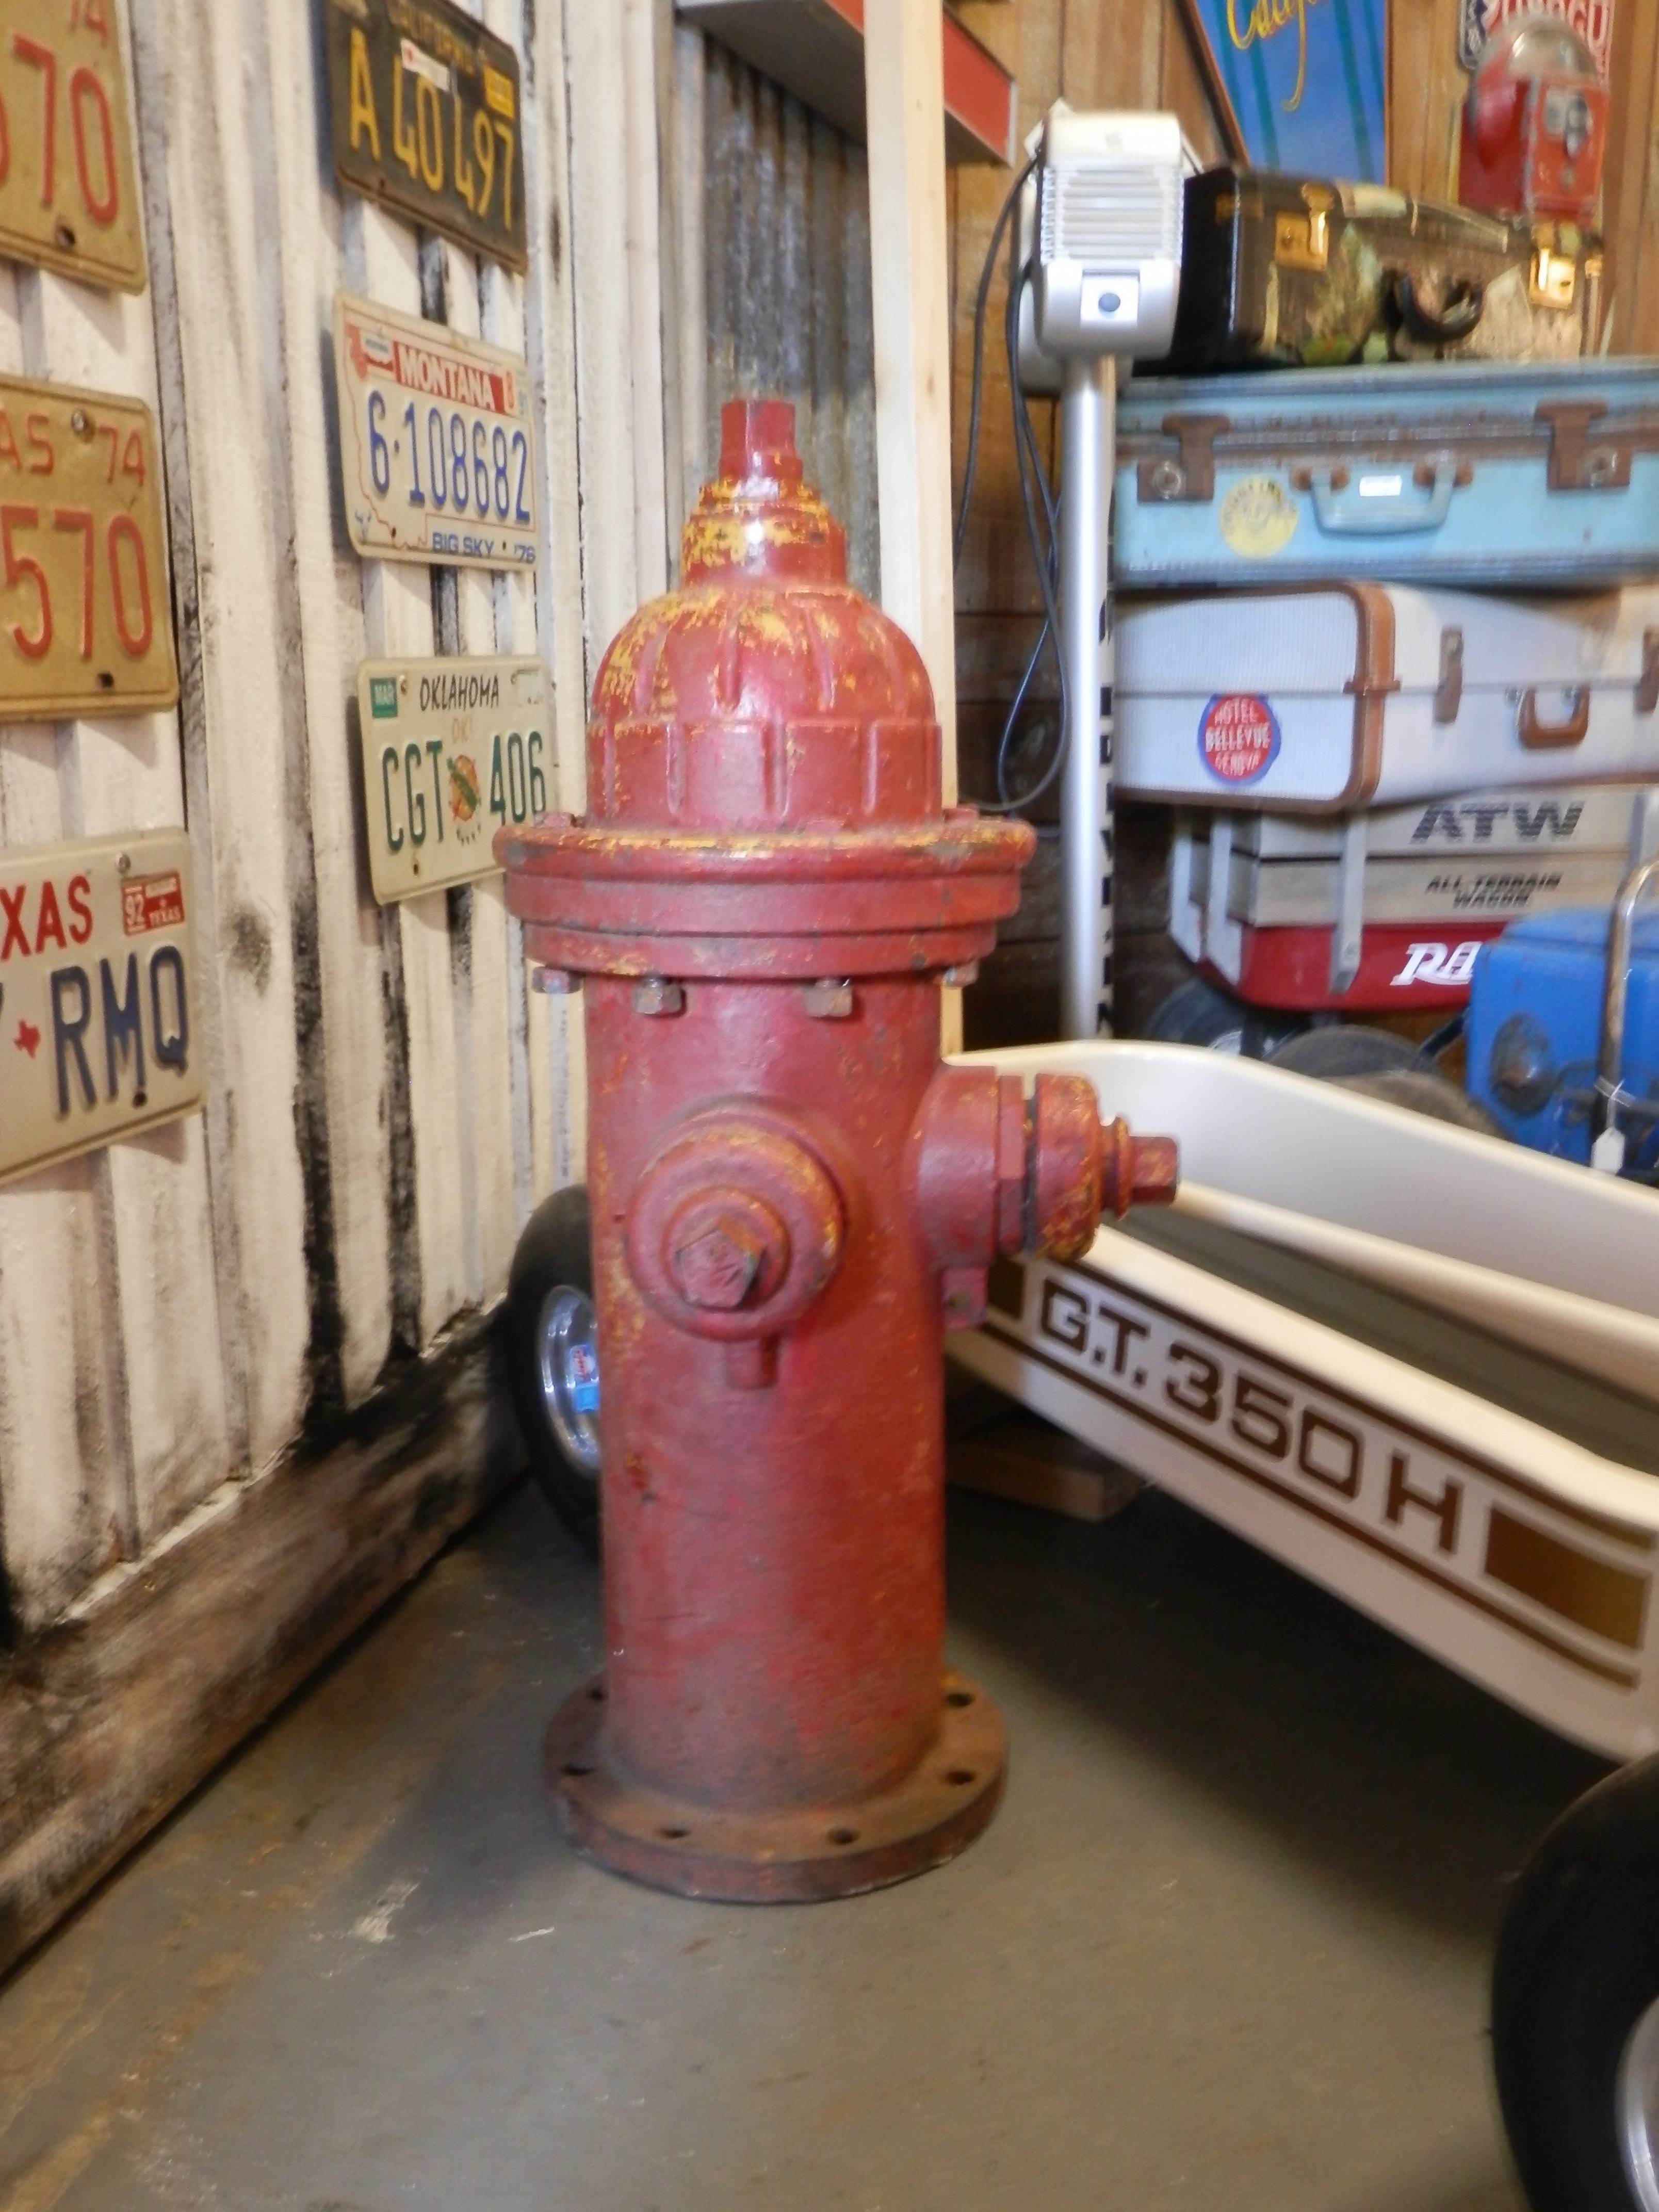 USA red fire hydrant